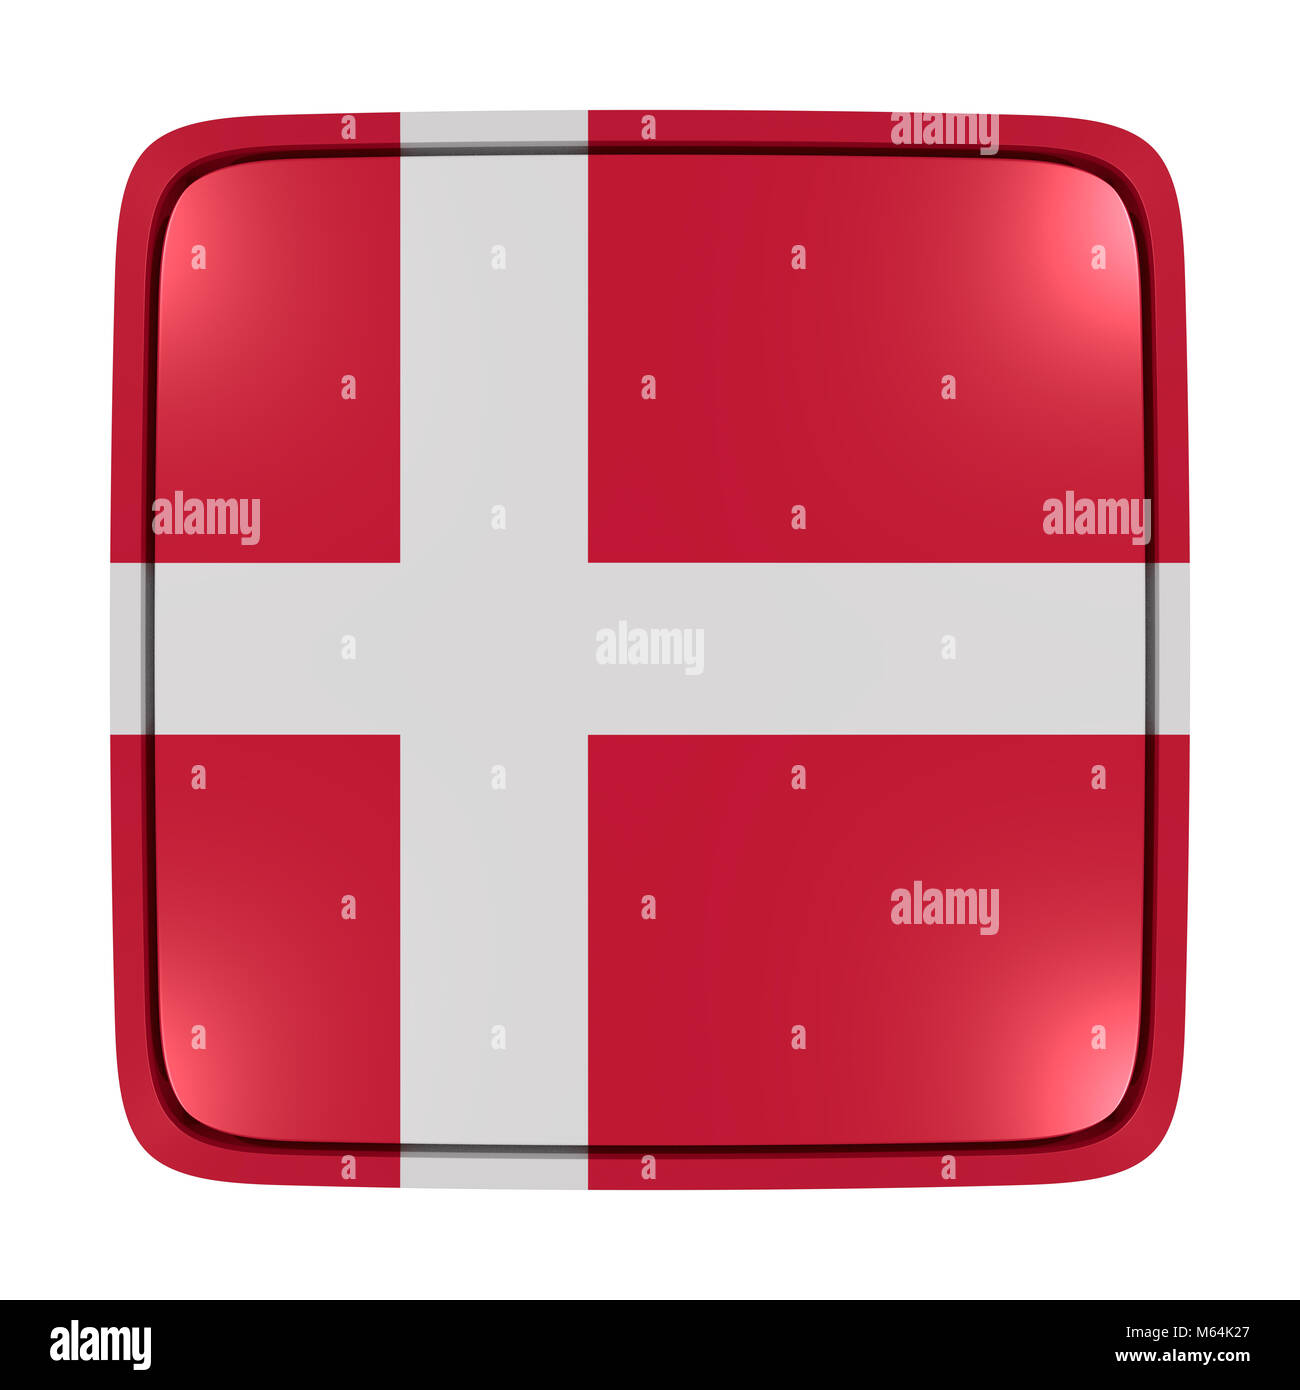 3d rendering of a Denmark flag icon. Isolated on white background. Stock Photo